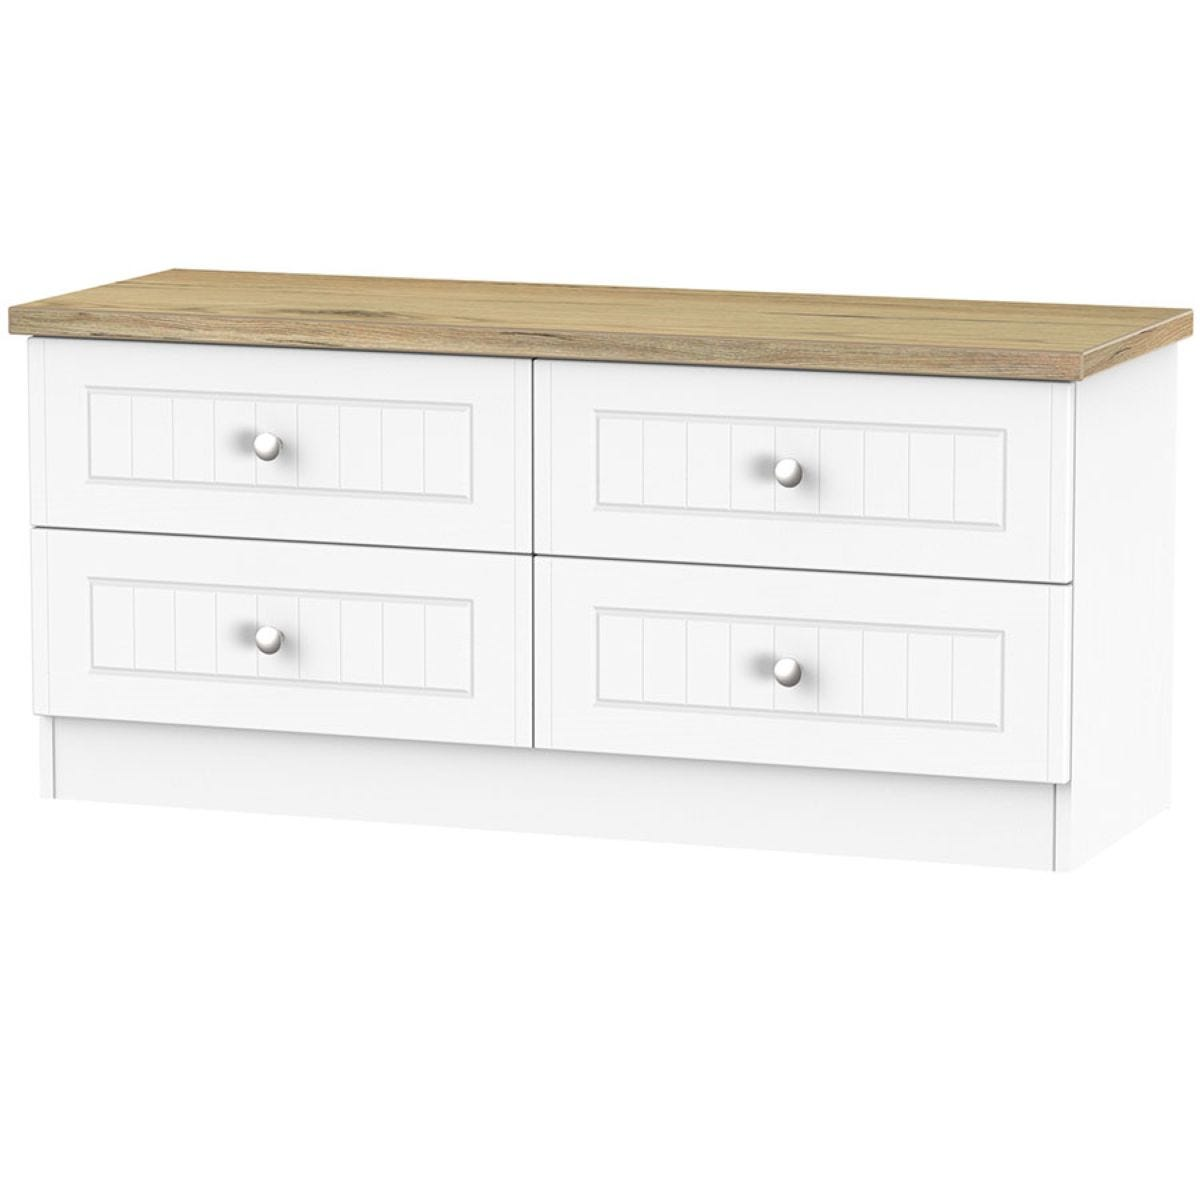 Wilcox 4-Drawer Midi Chest of Drawers - Porcelain Ash